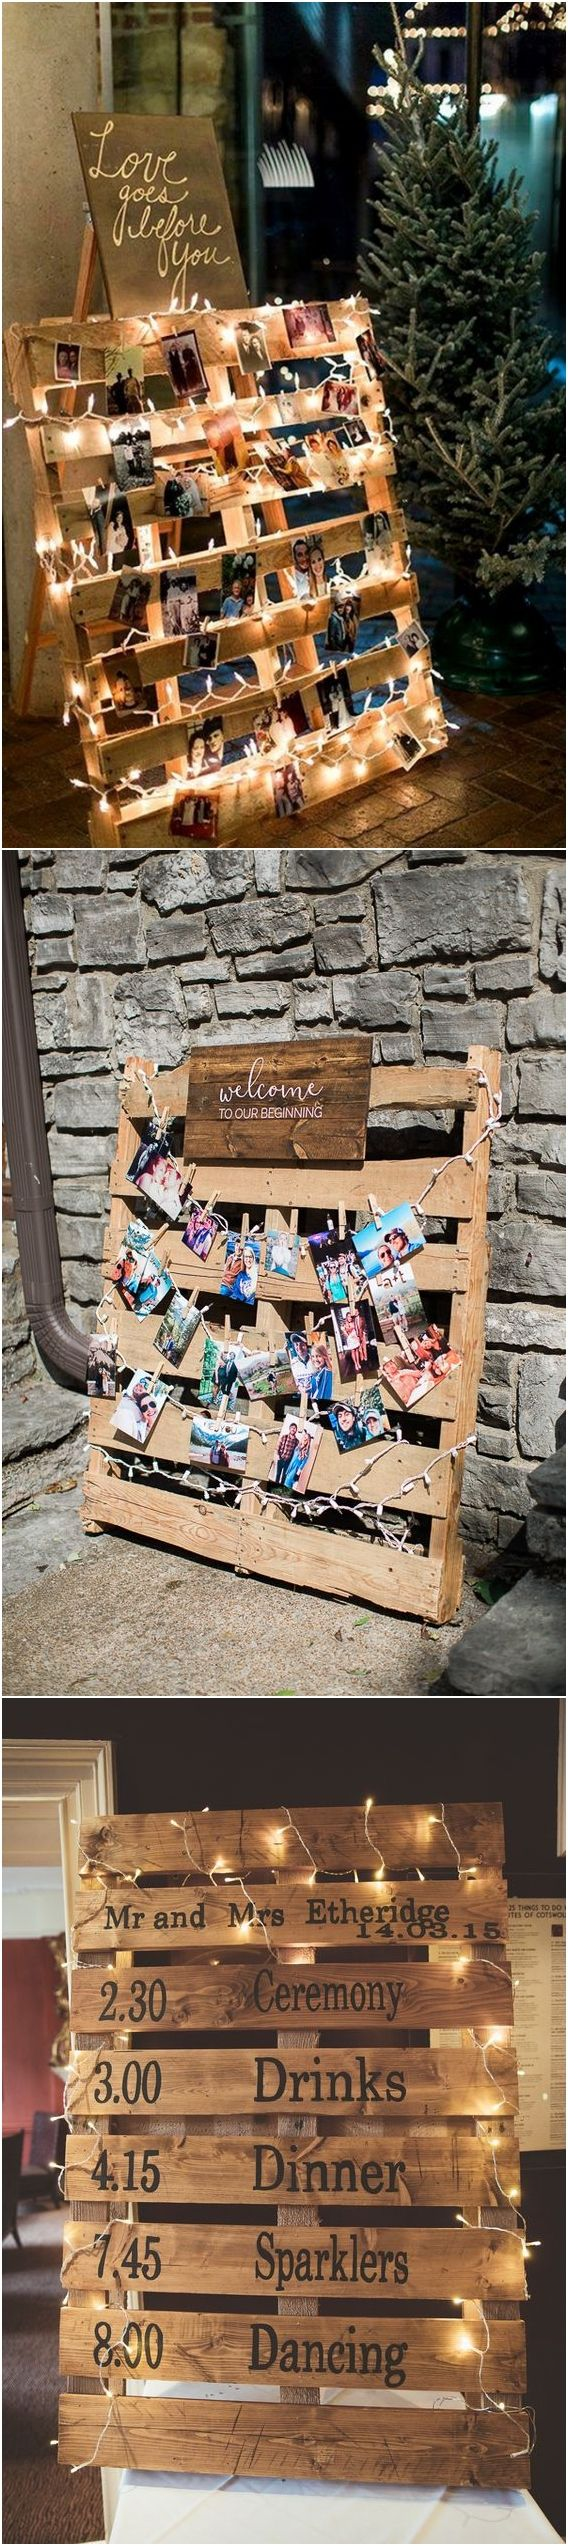 Wooden wedding decor ideas  Top  Rustic Country Wooden Pallet Wedding Ideas  Wooden pallets